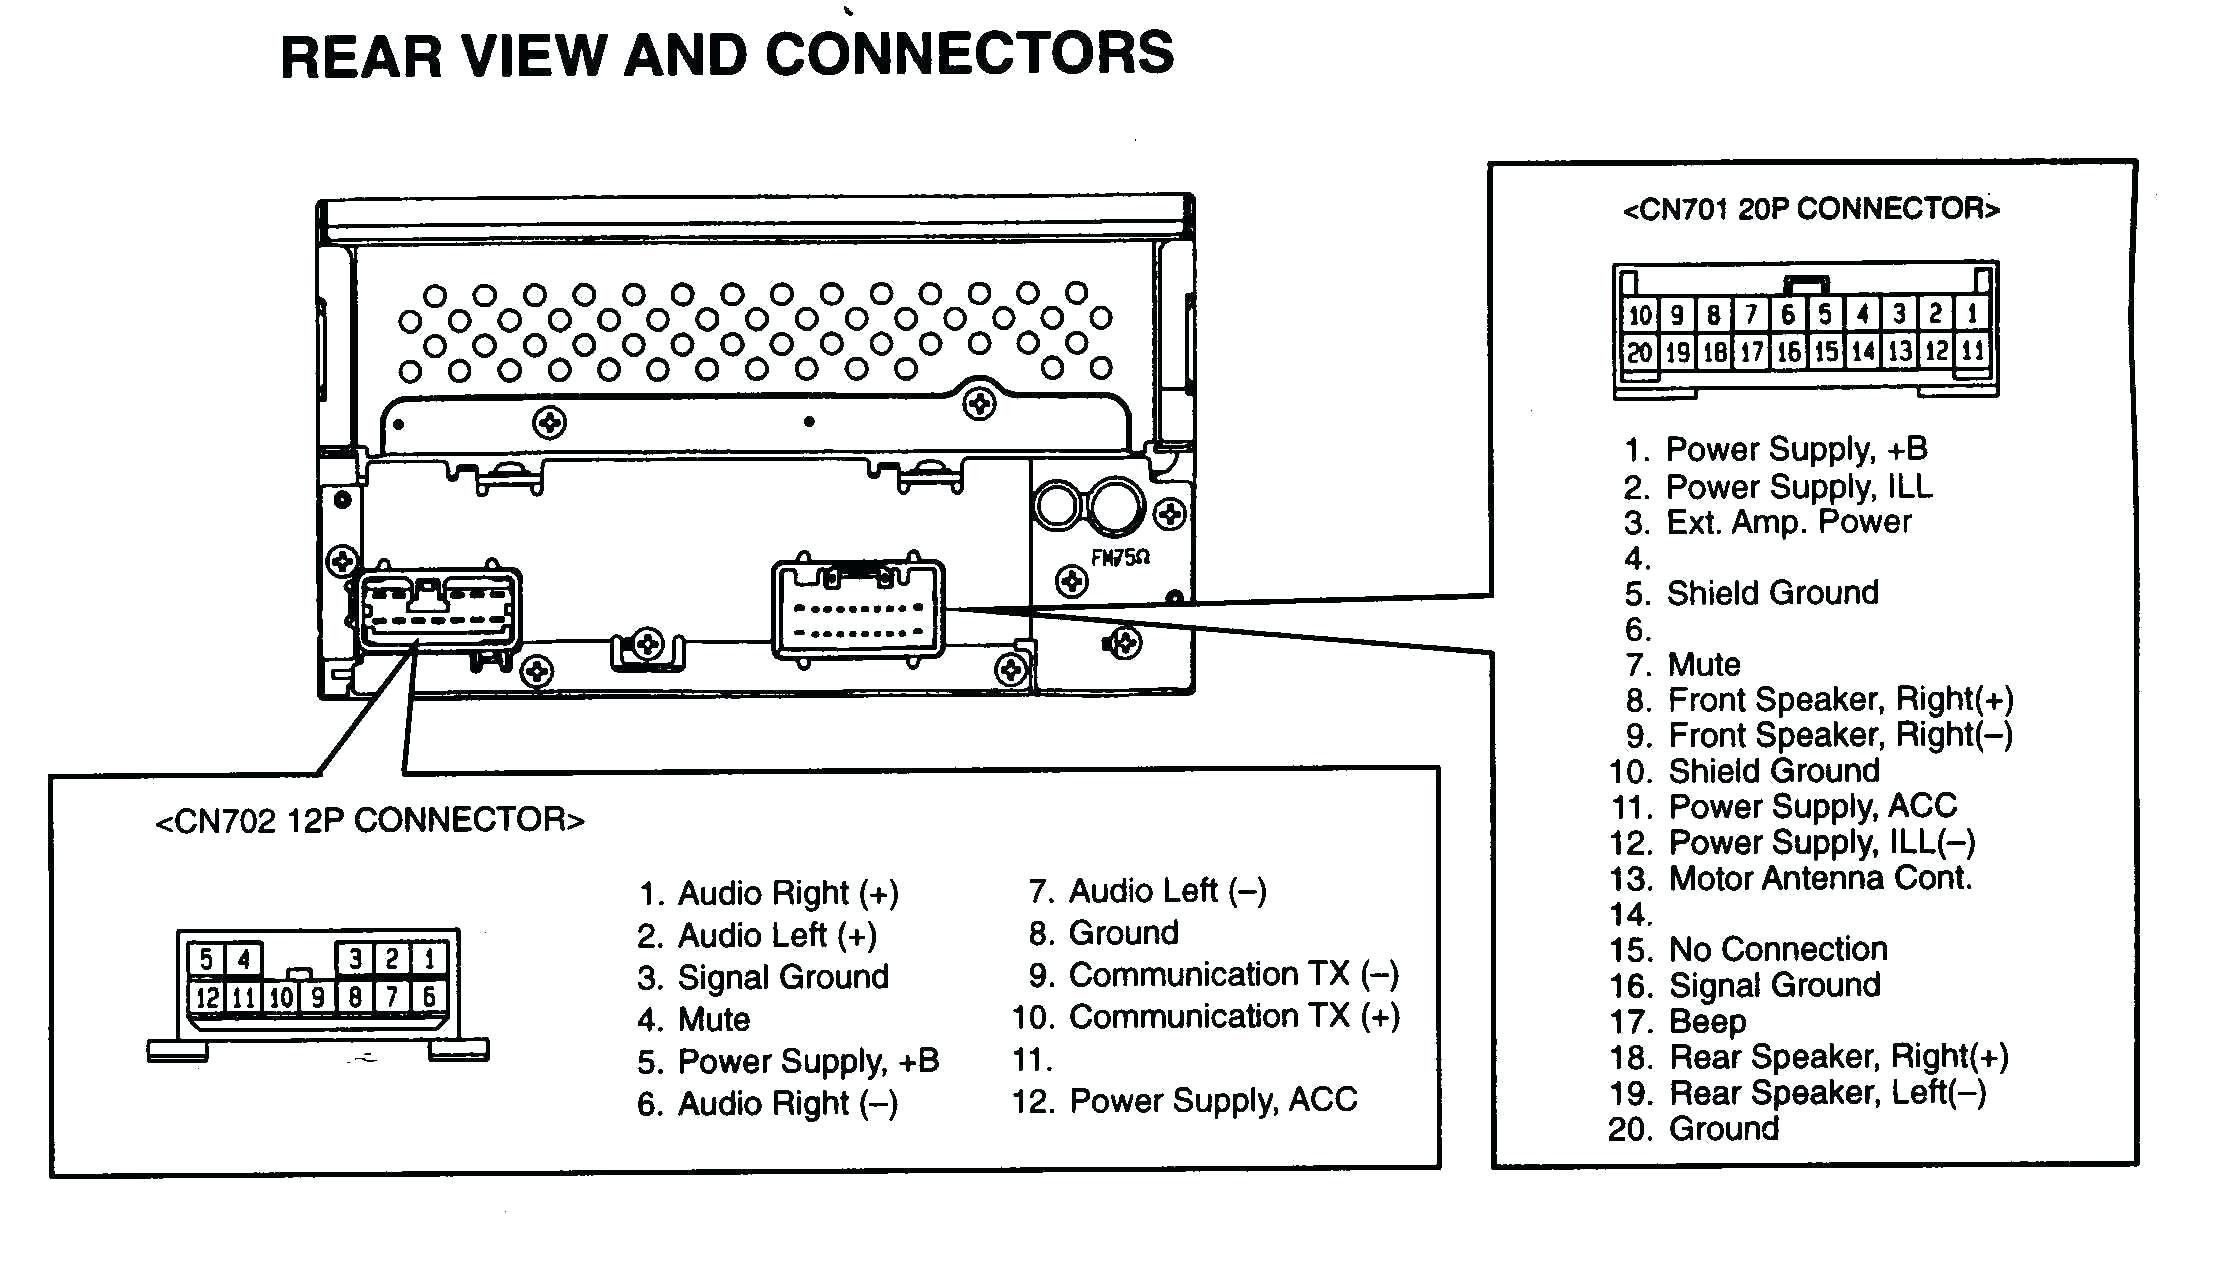 2010 Toyota Corolla Speaker Wiring Diagram Diy Wiring Diagrams Throughout 2009 Toyota Corolla Wiring Diagram Electrical Wiring Diagram Car Stereo Diagram